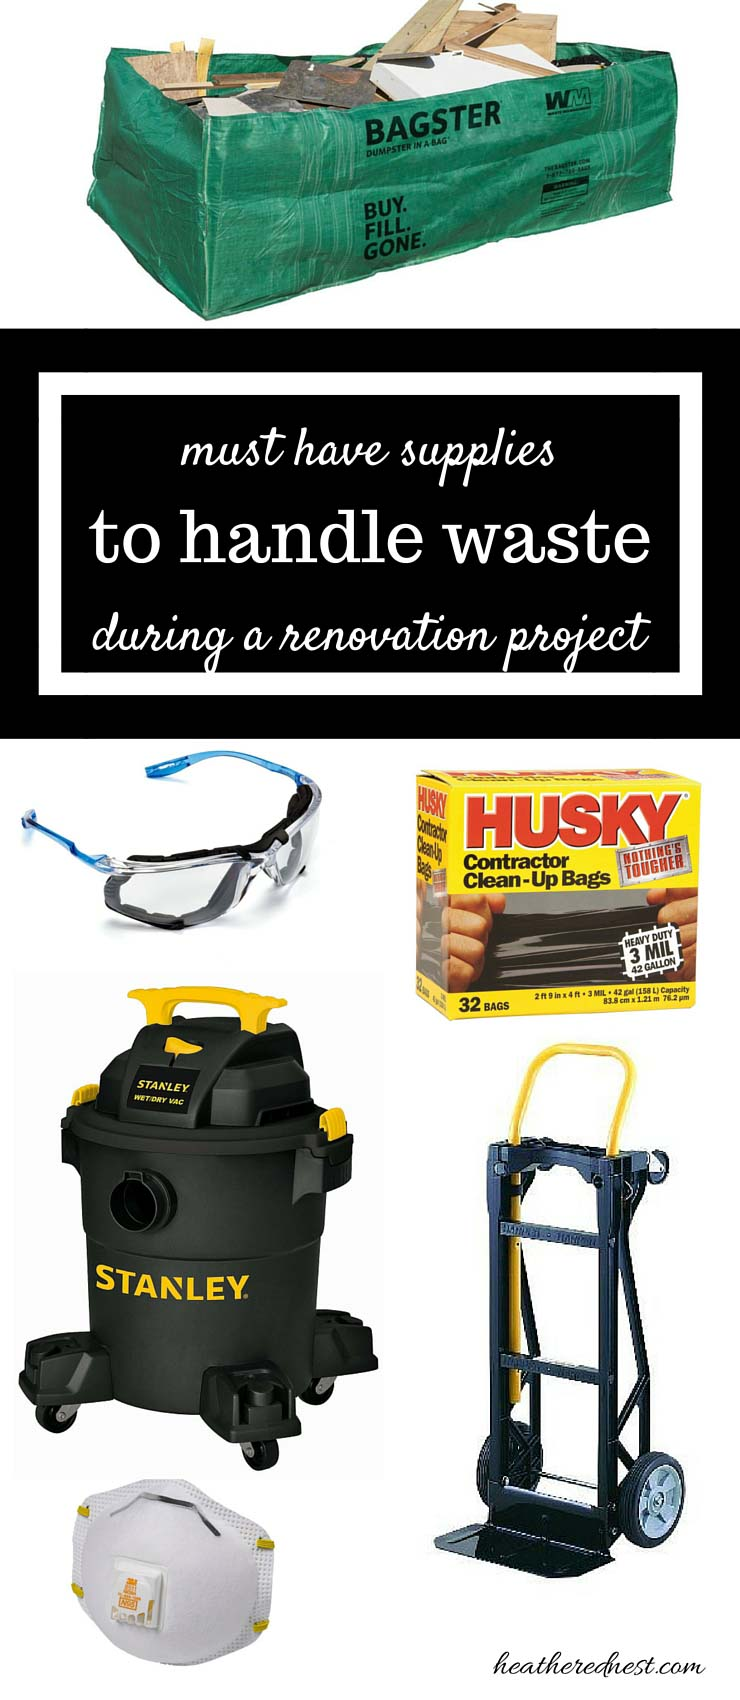 DO NOT start a demolition or renovation DIY project without the right supplies to deal with the waste! MUST HAVE supplies from www.heatherednest.com